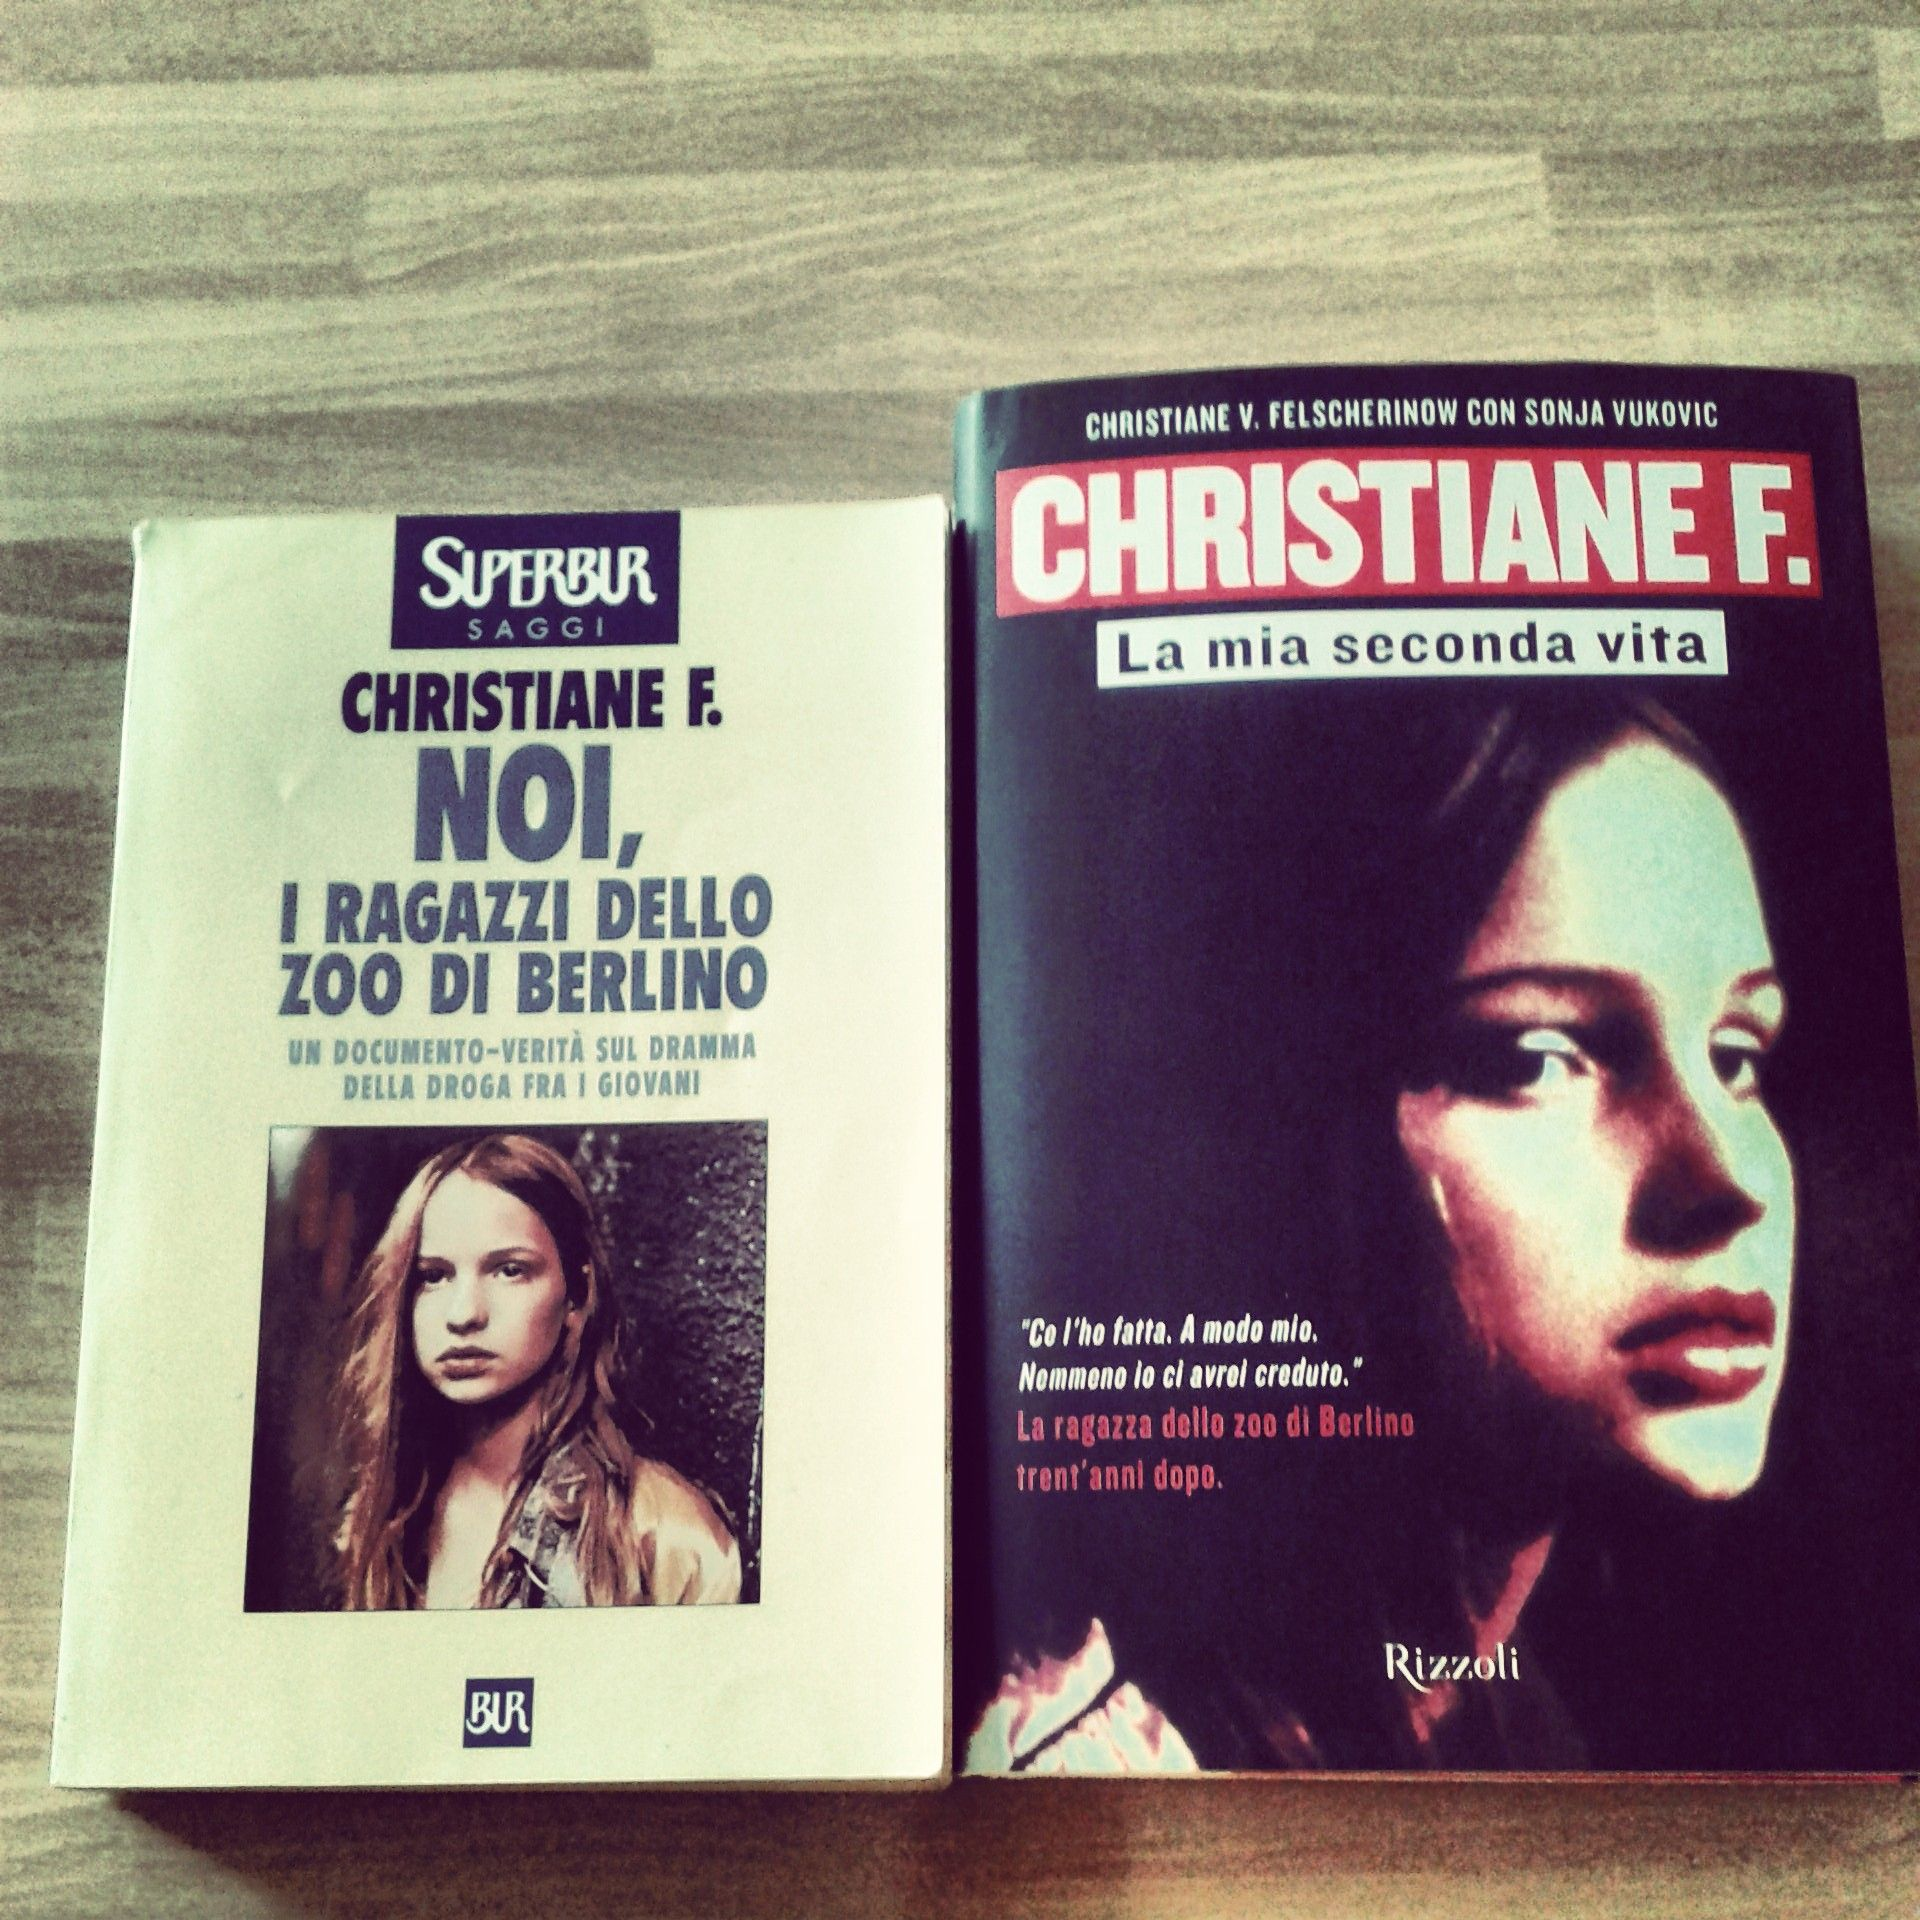 christiane f la mia seconda vita  Sinistra (Left): Christiane F.